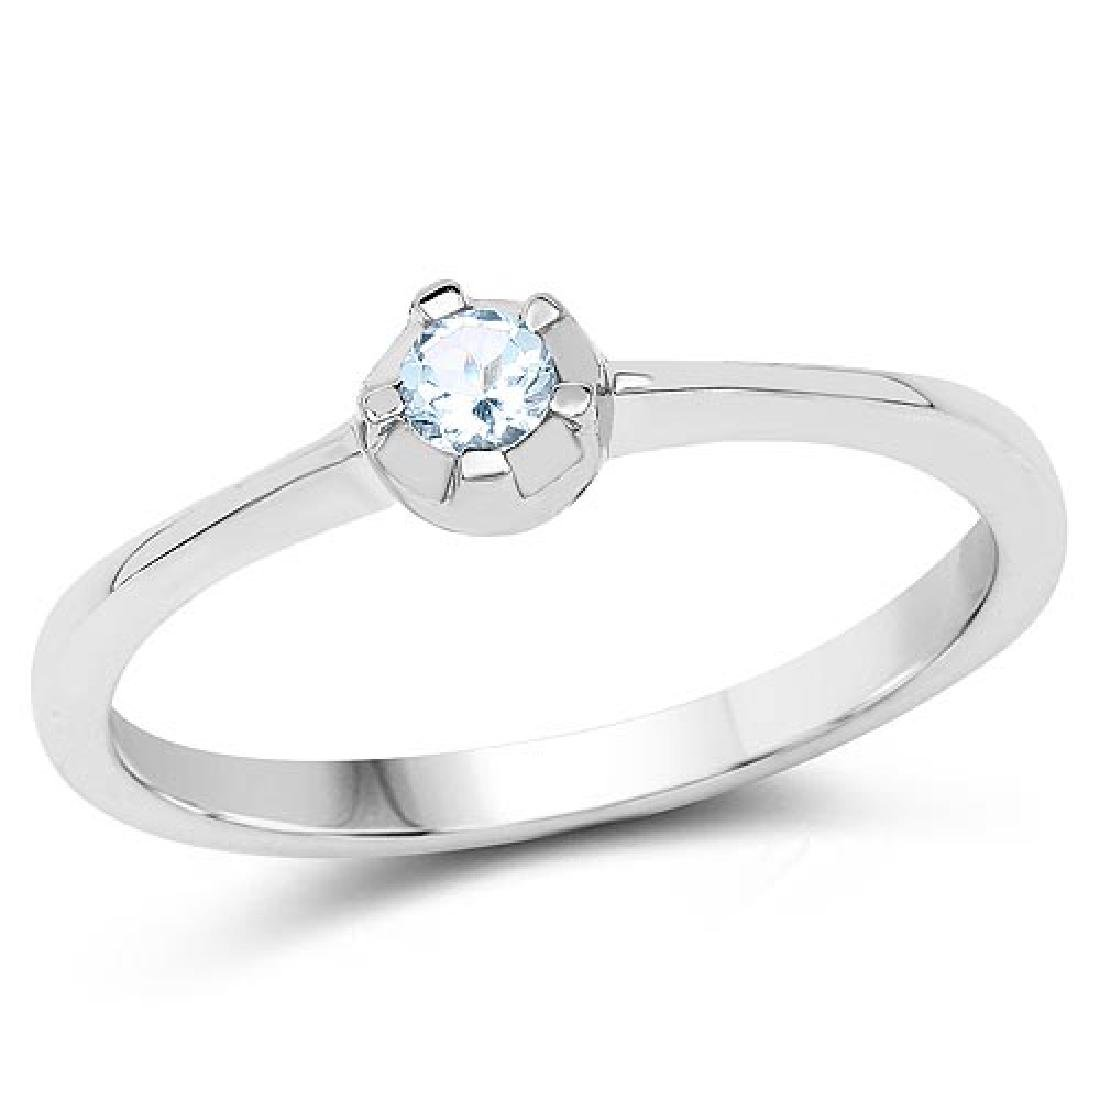 0.12 Carat Genuine Blue Topaz .925 Sterling Silver Ring